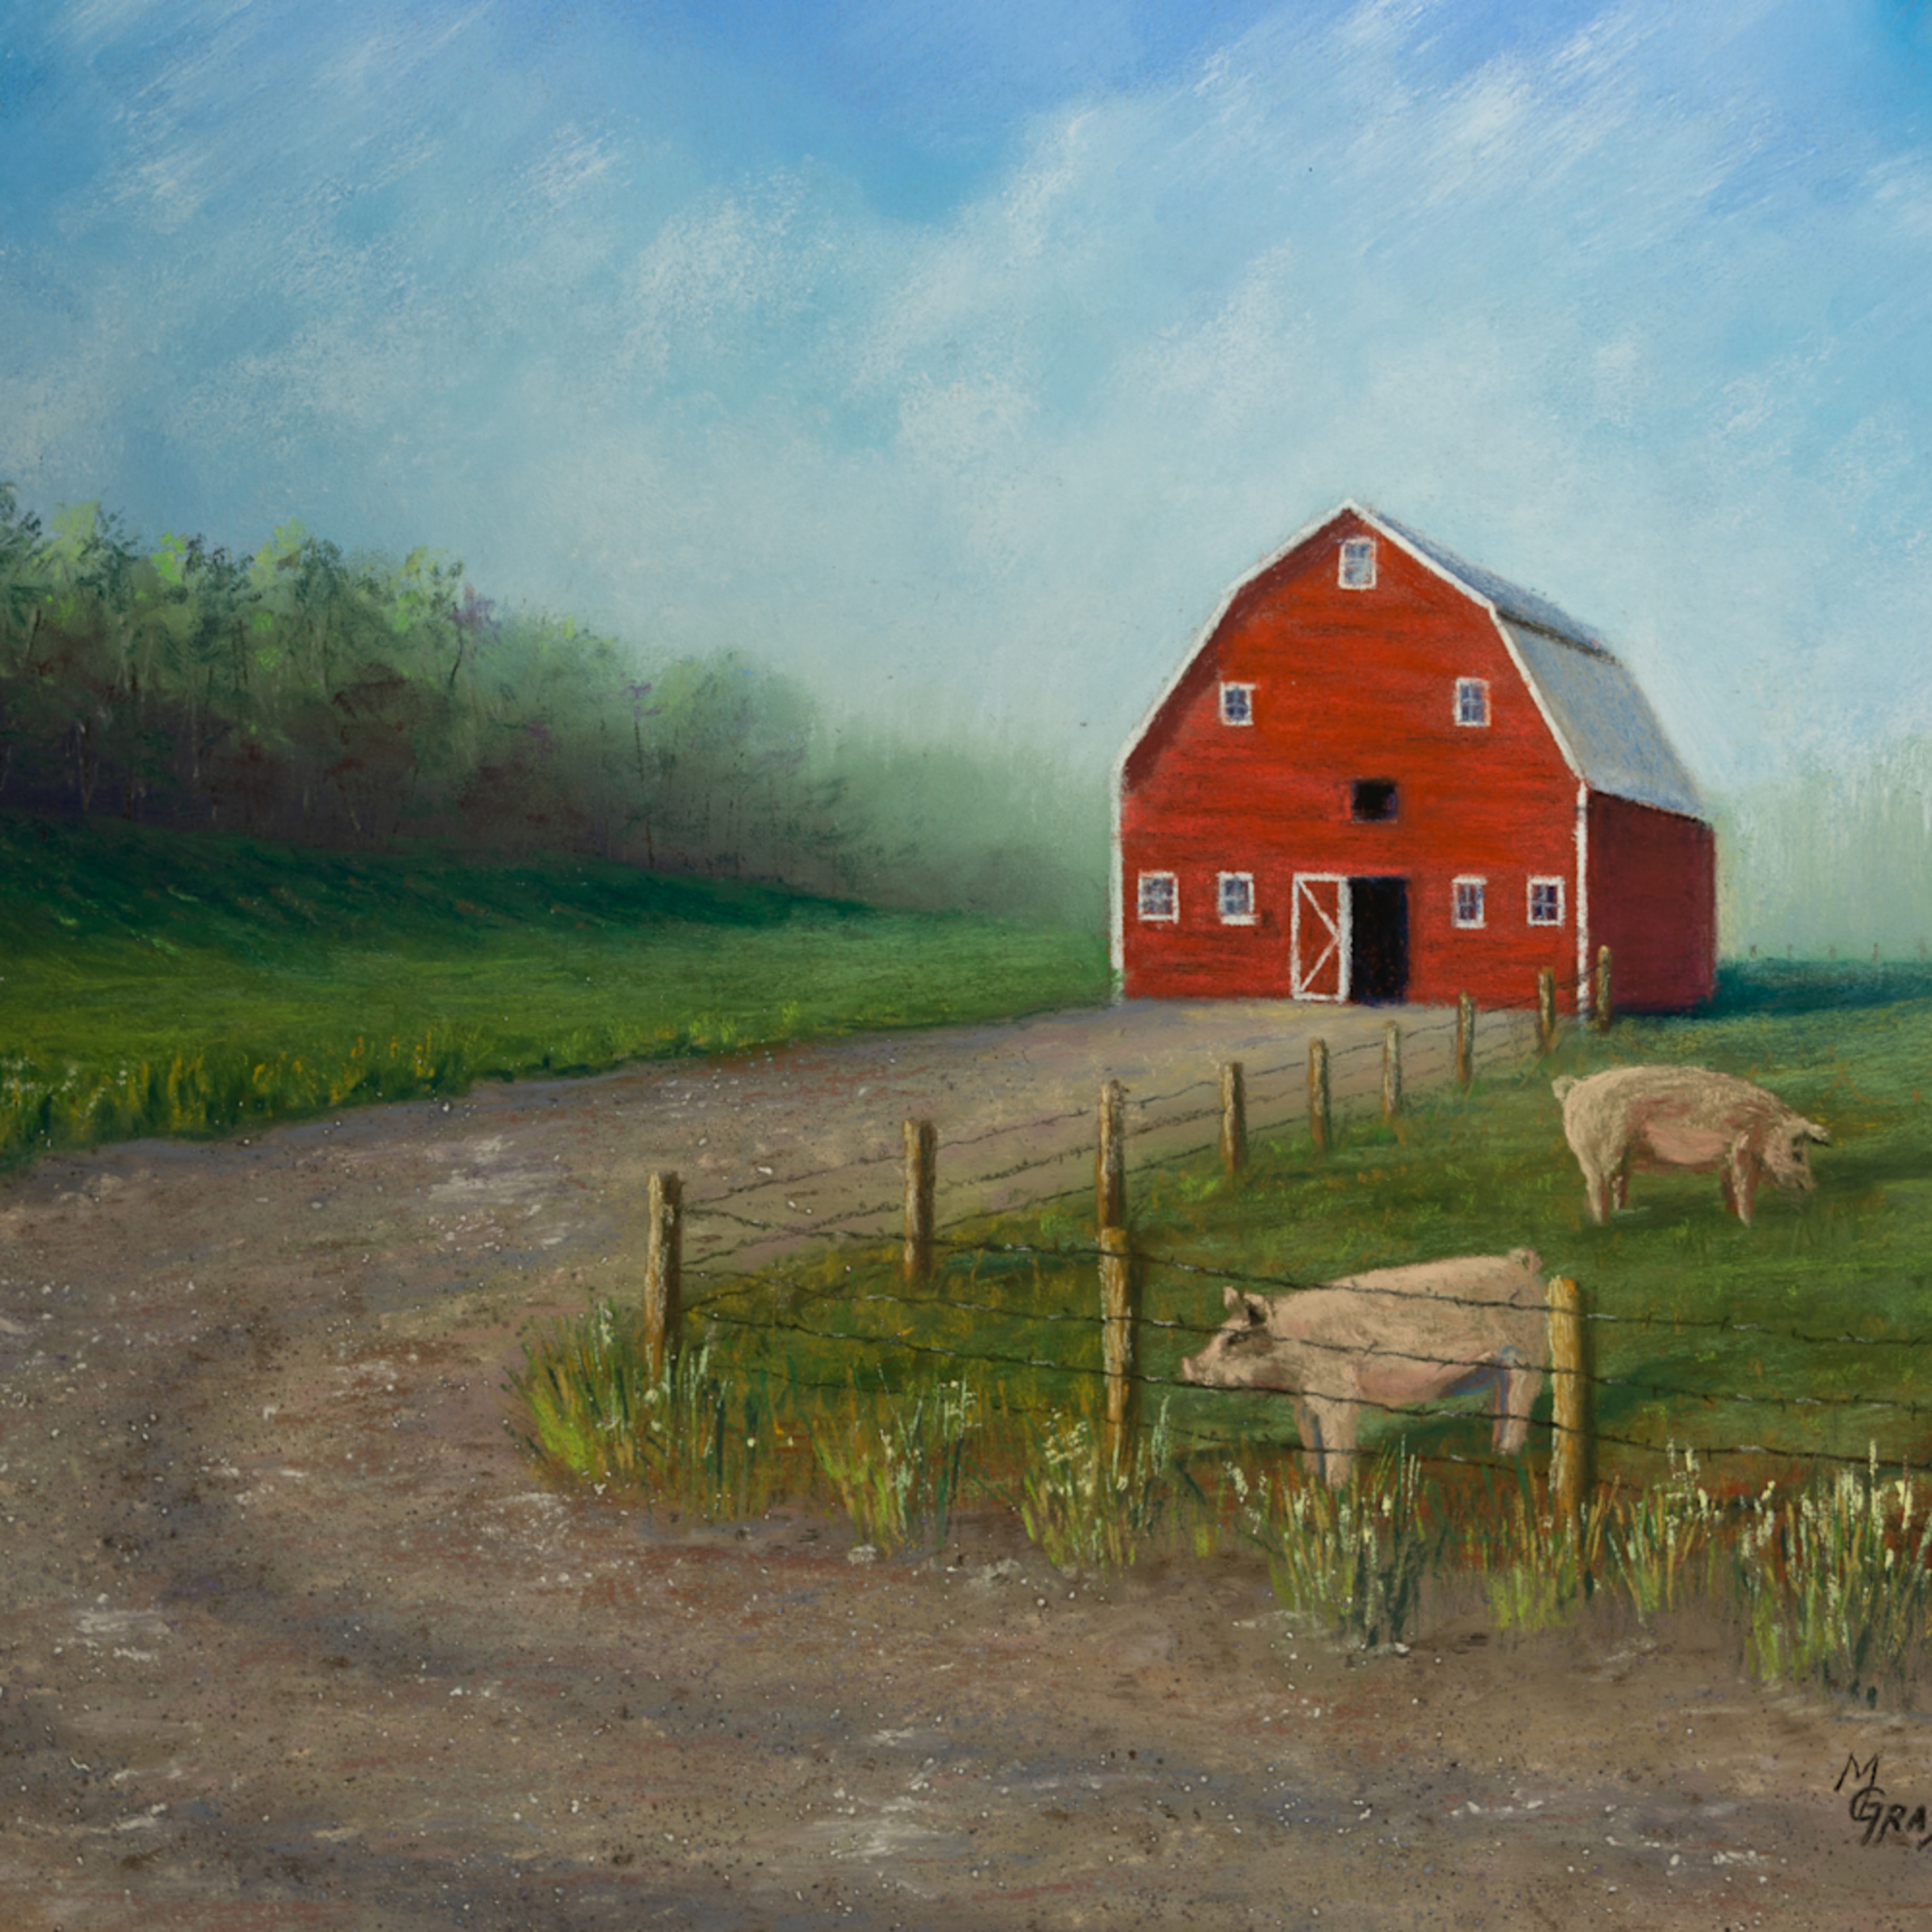 Red barn with pigs wxjbei